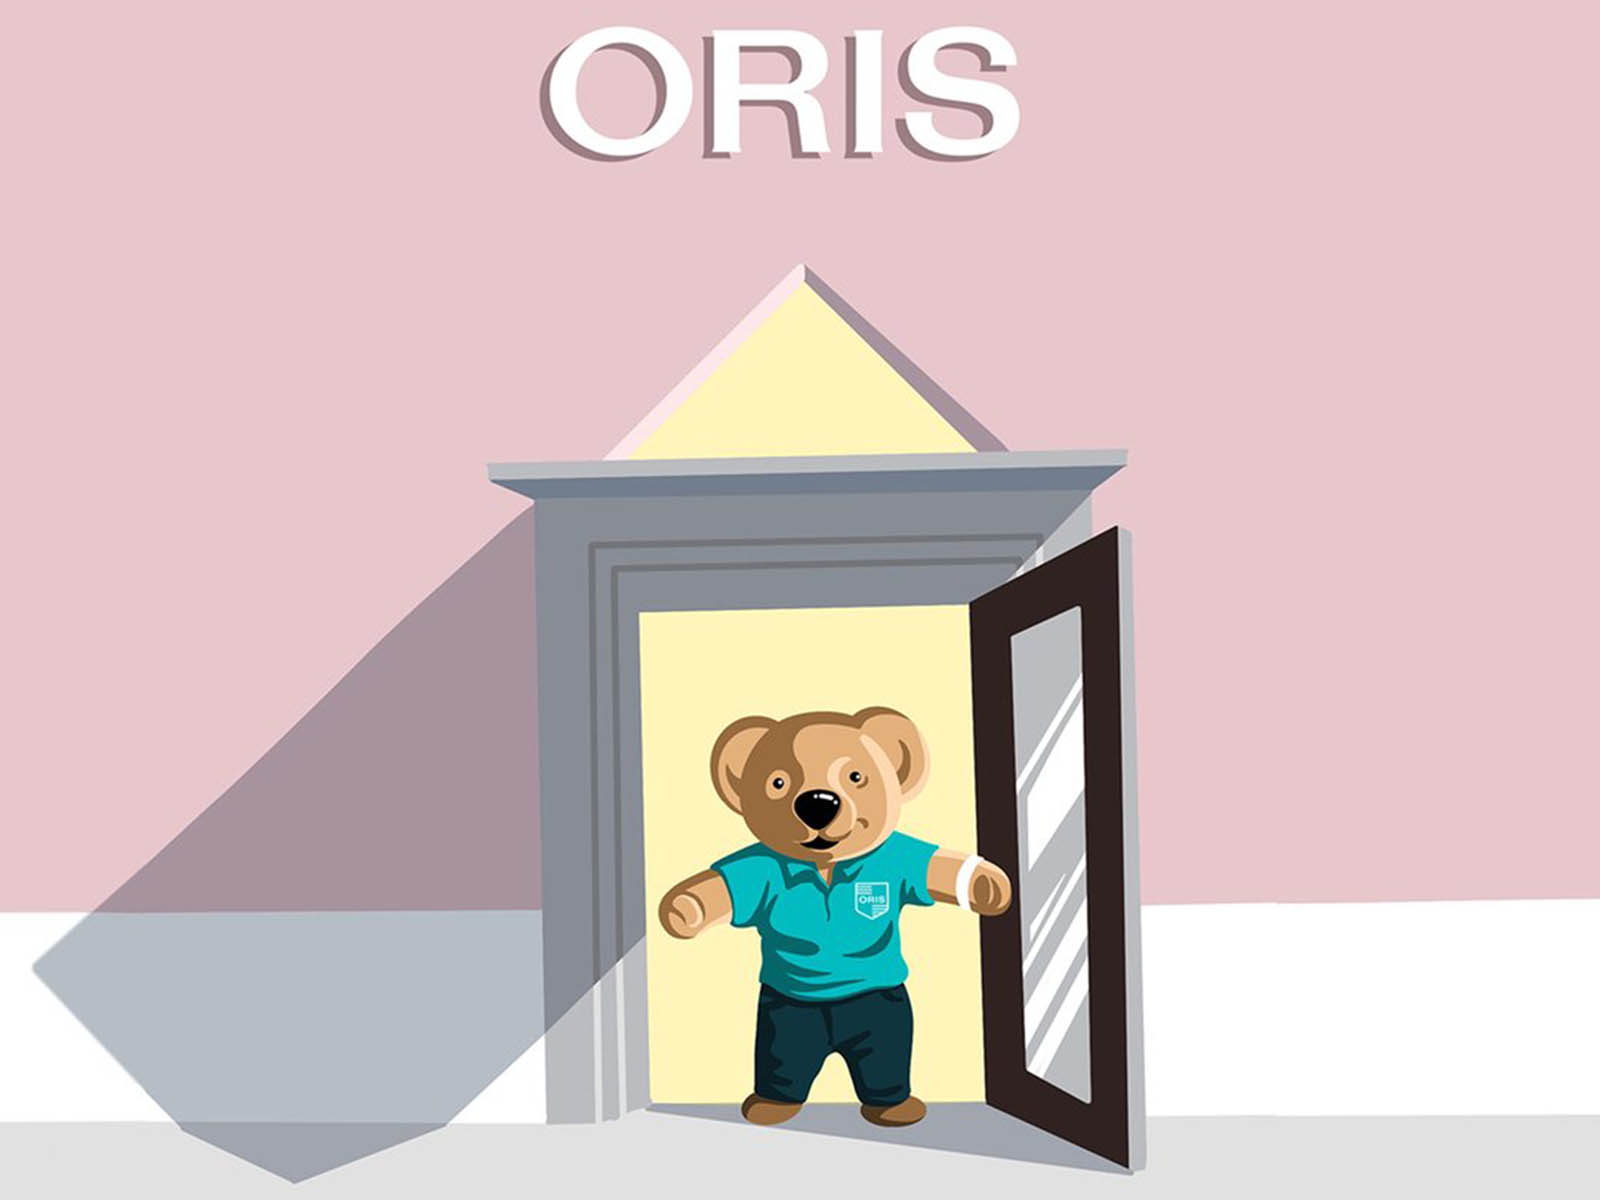 oris-supports-local-heroes-2.jpg